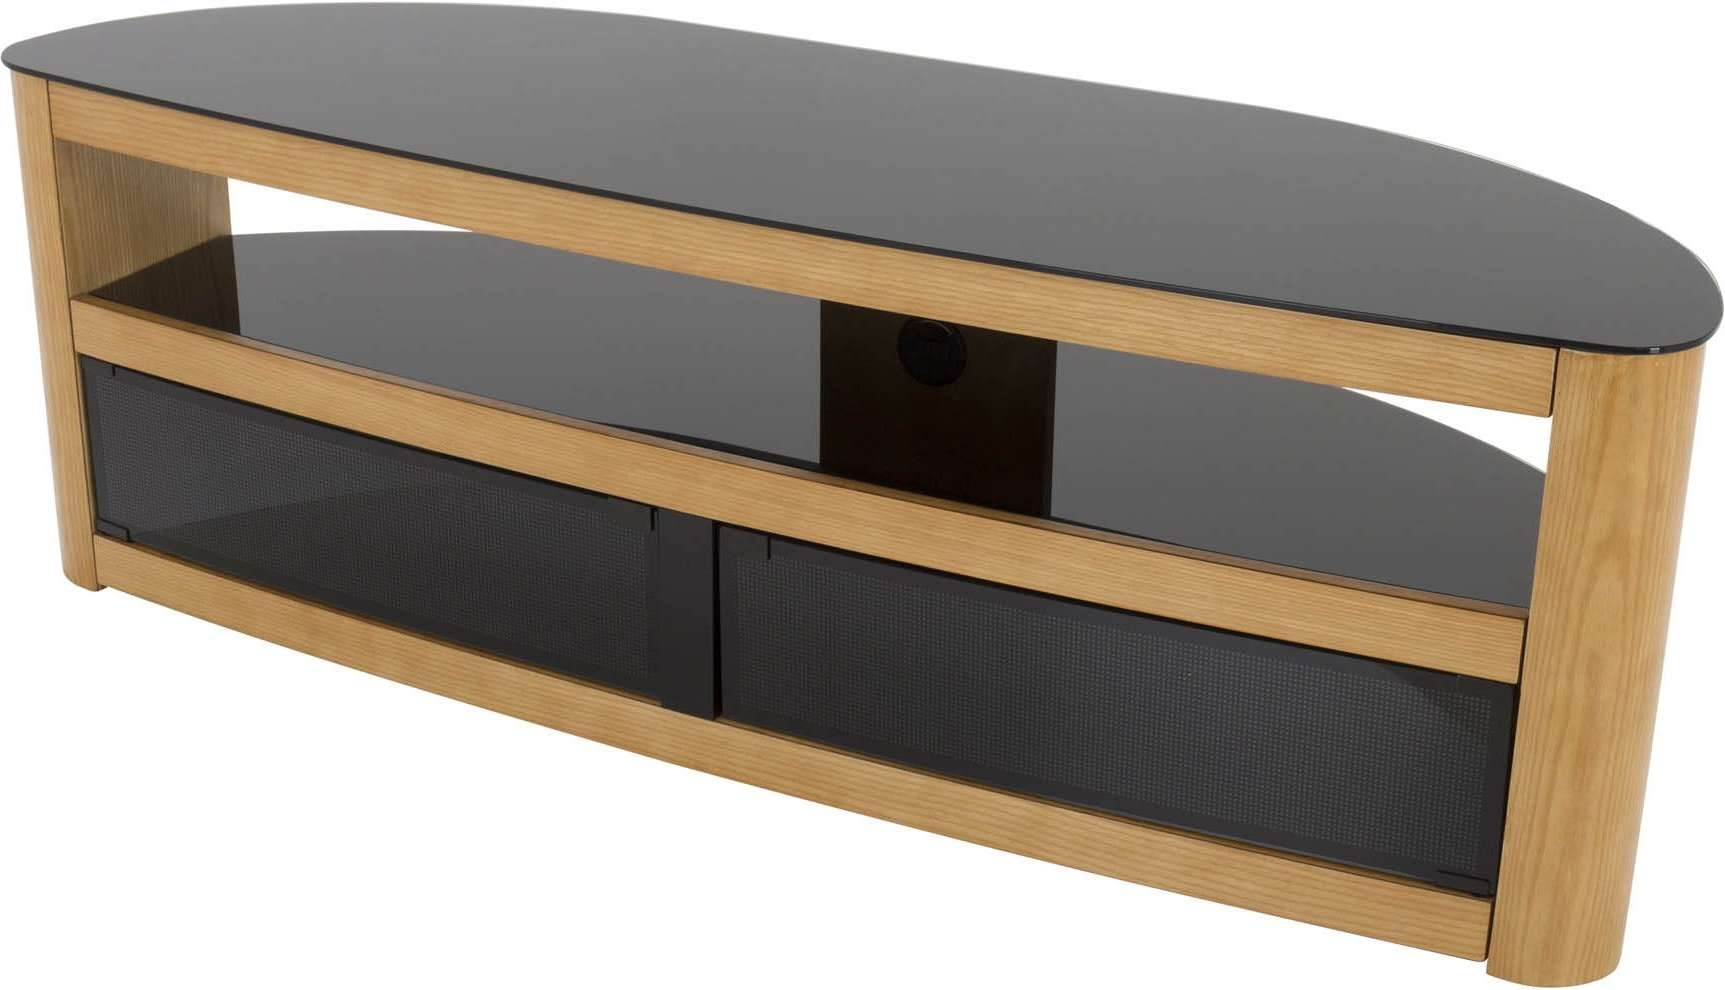 Avf Fs1500Buro Tv Stands Pertaining To Tv Stands In Oak (View 3 of 15)